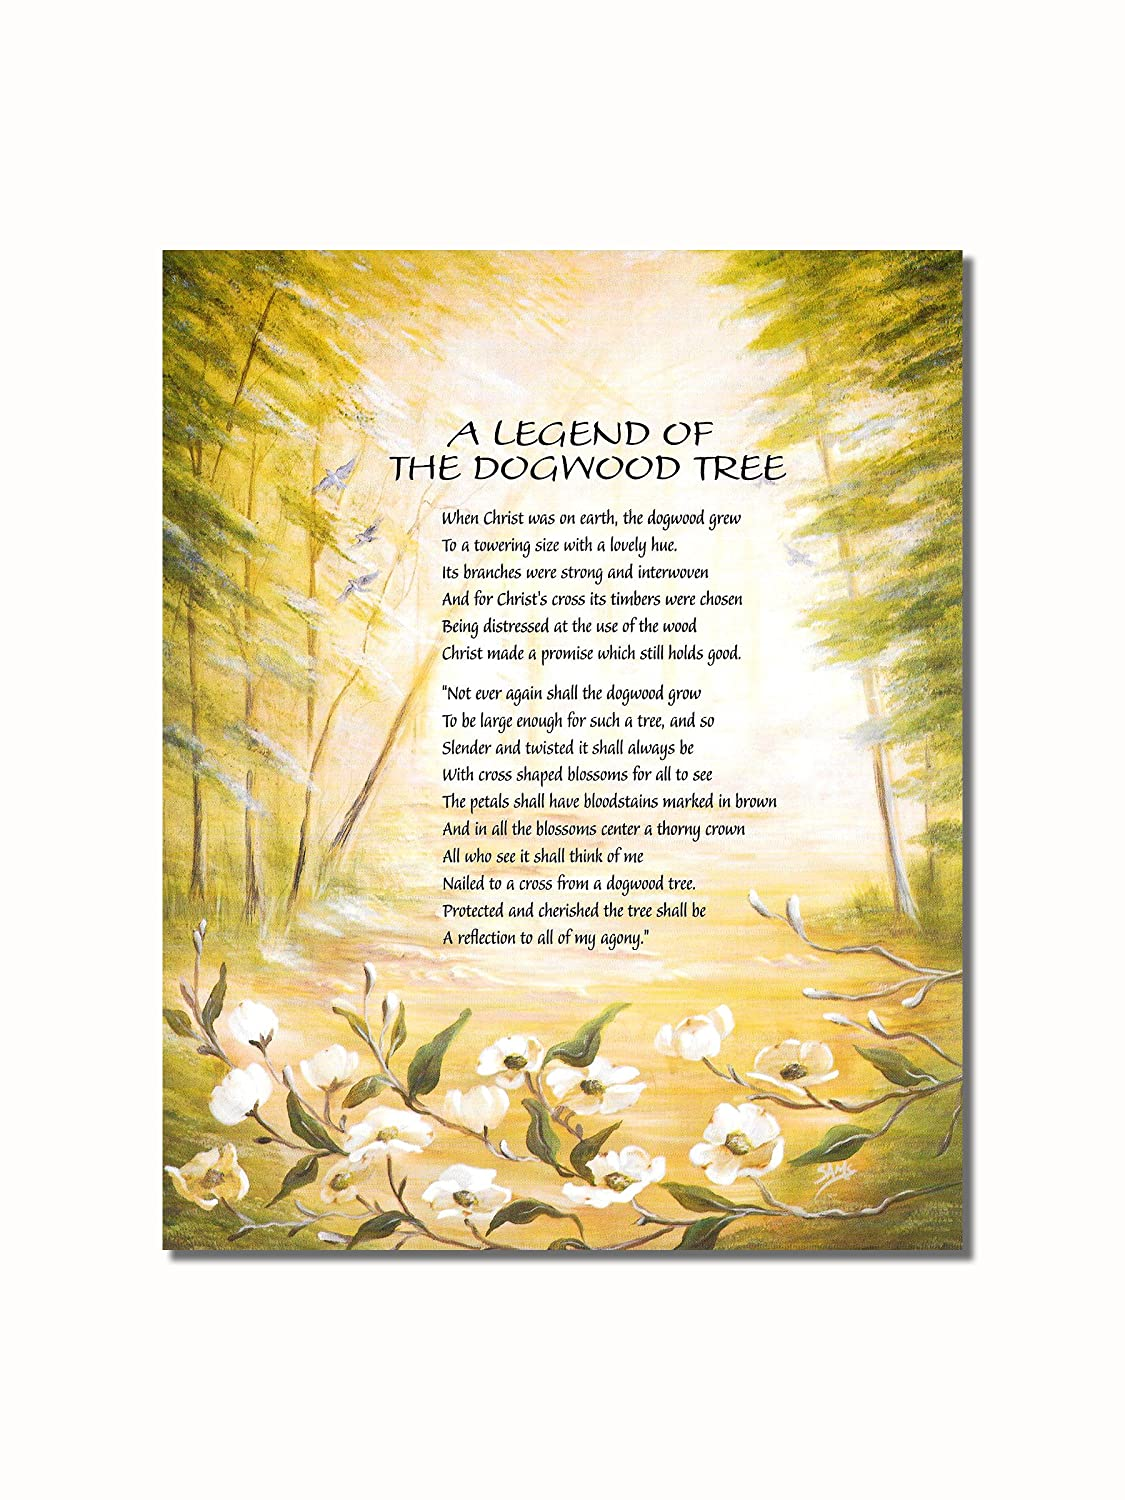 Amazon.com: Legend of the Dogwood Tree Christian Religious Wall ...